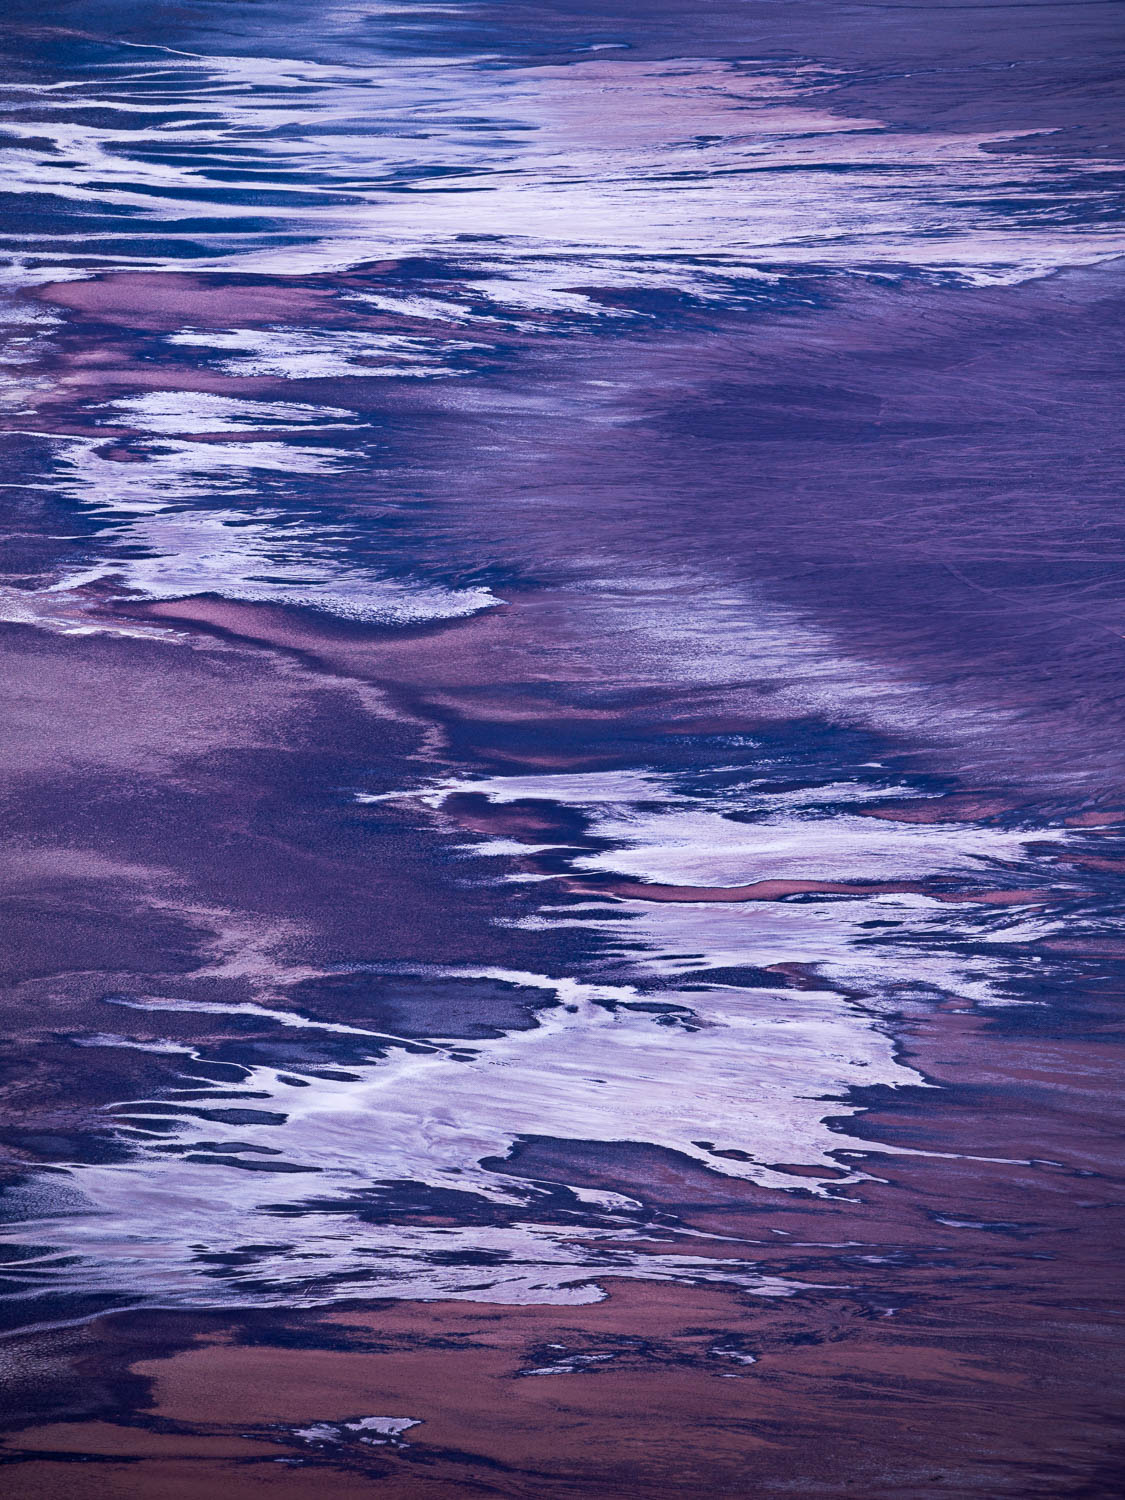 Abstract salt flat patterns stretch upward on purple valley